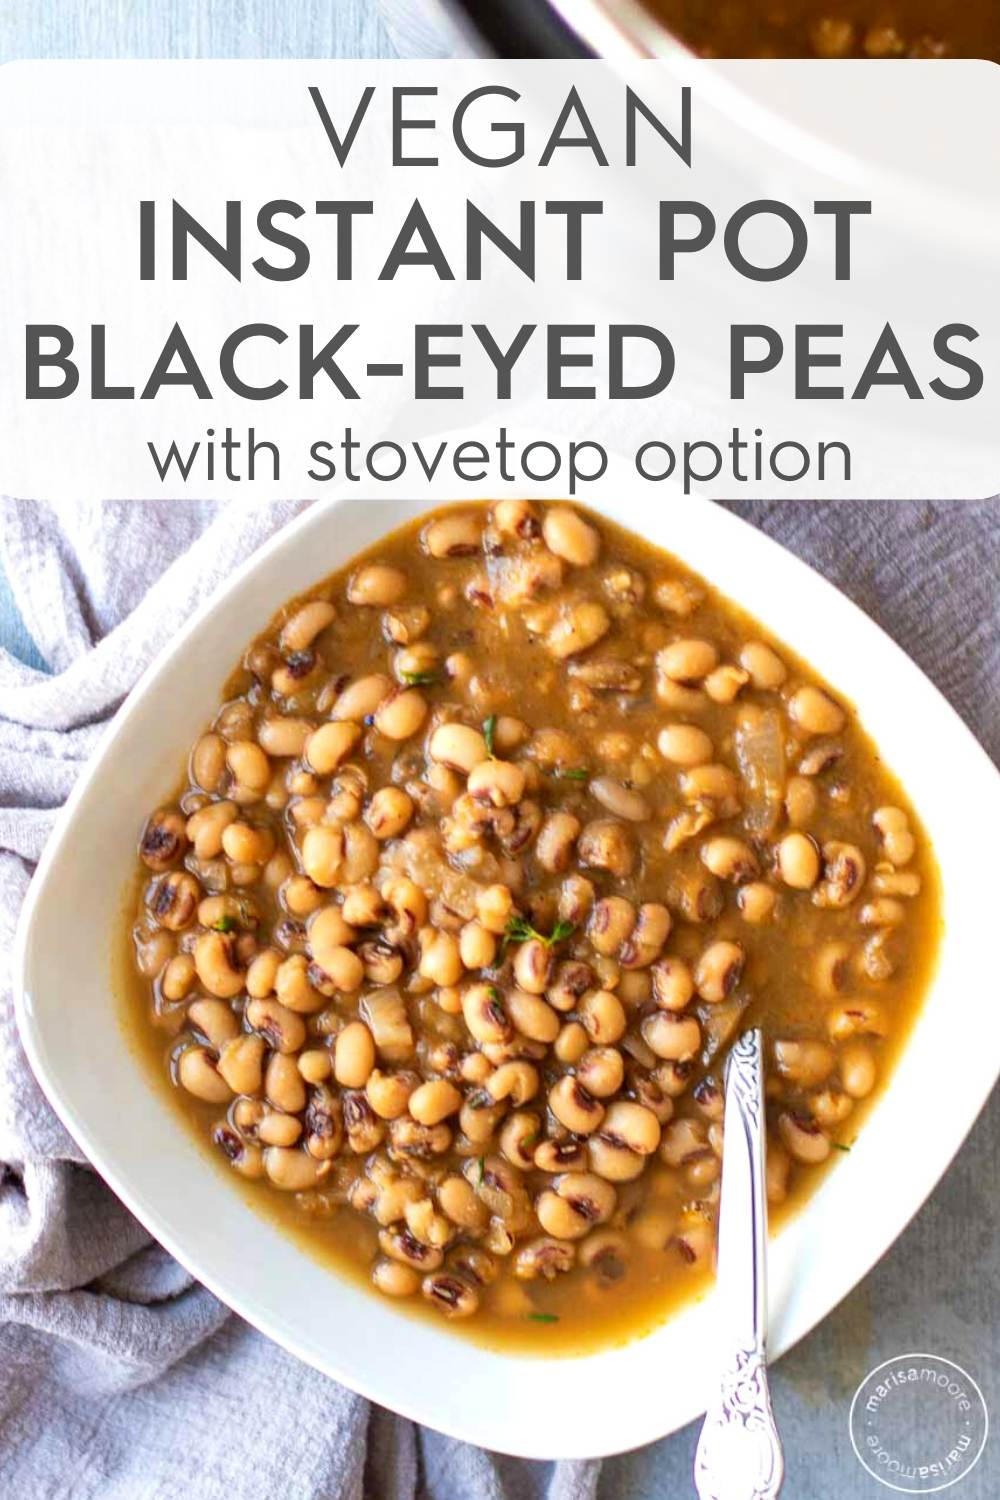 Instant Pot Black Eyed Peas in bowl